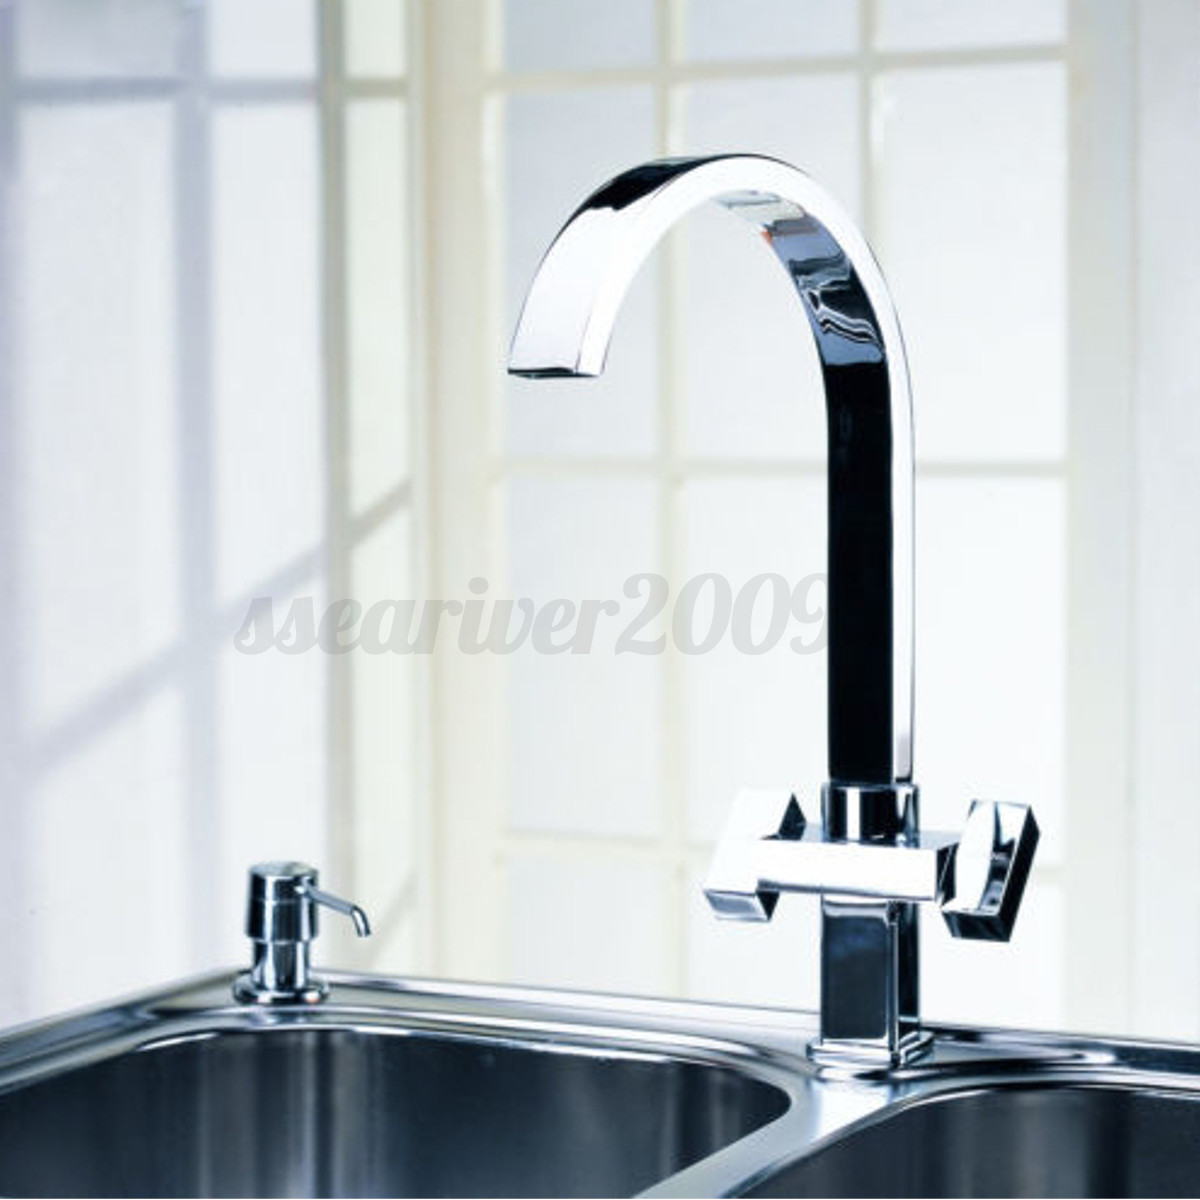 Kitchen faucet swivel spout pull down sprayer bathroom - Bathroom sink faucet with sprayer ...